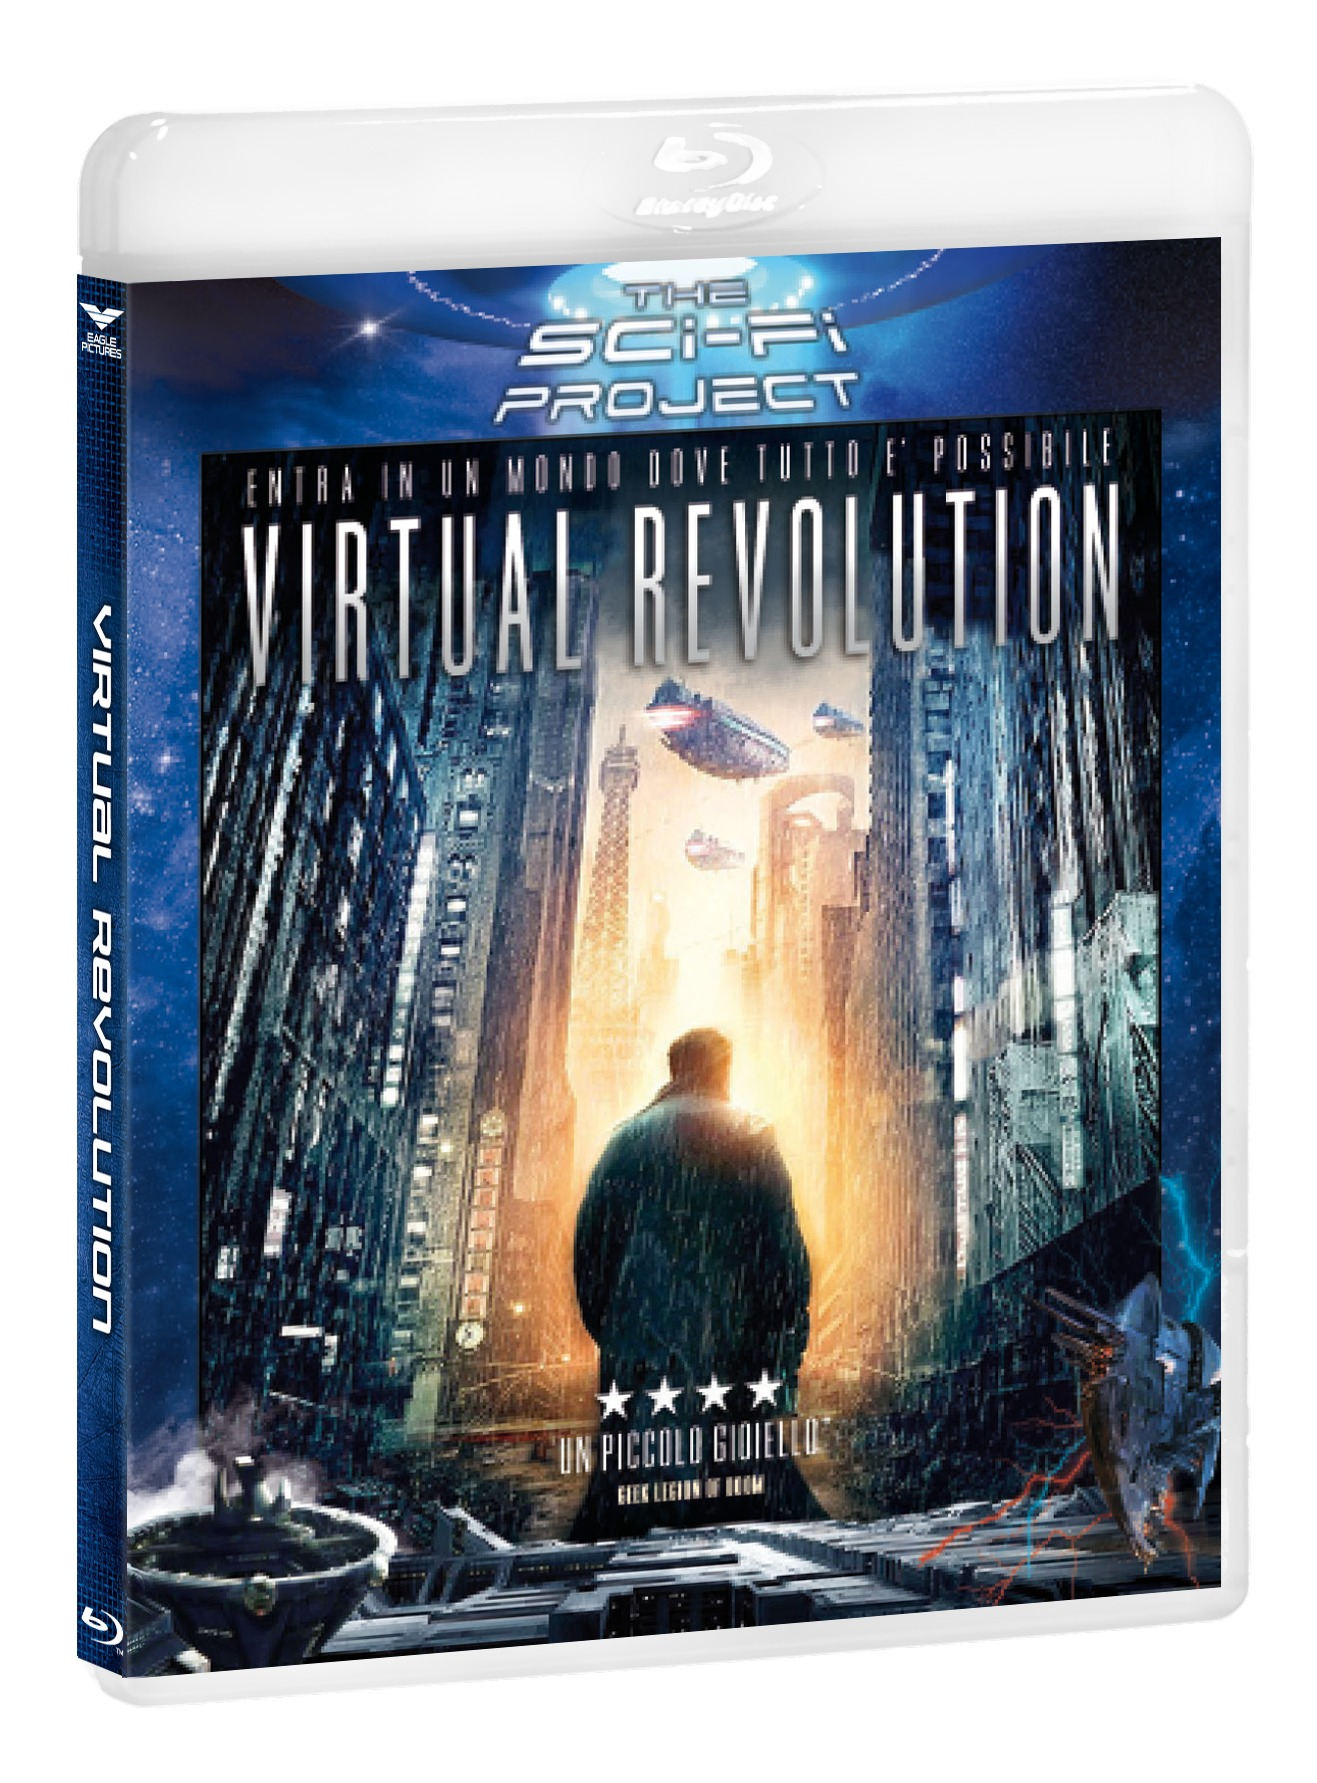 VIRTUAL REVOLUTION (SCI-FI PROJECT) - BLU RAY